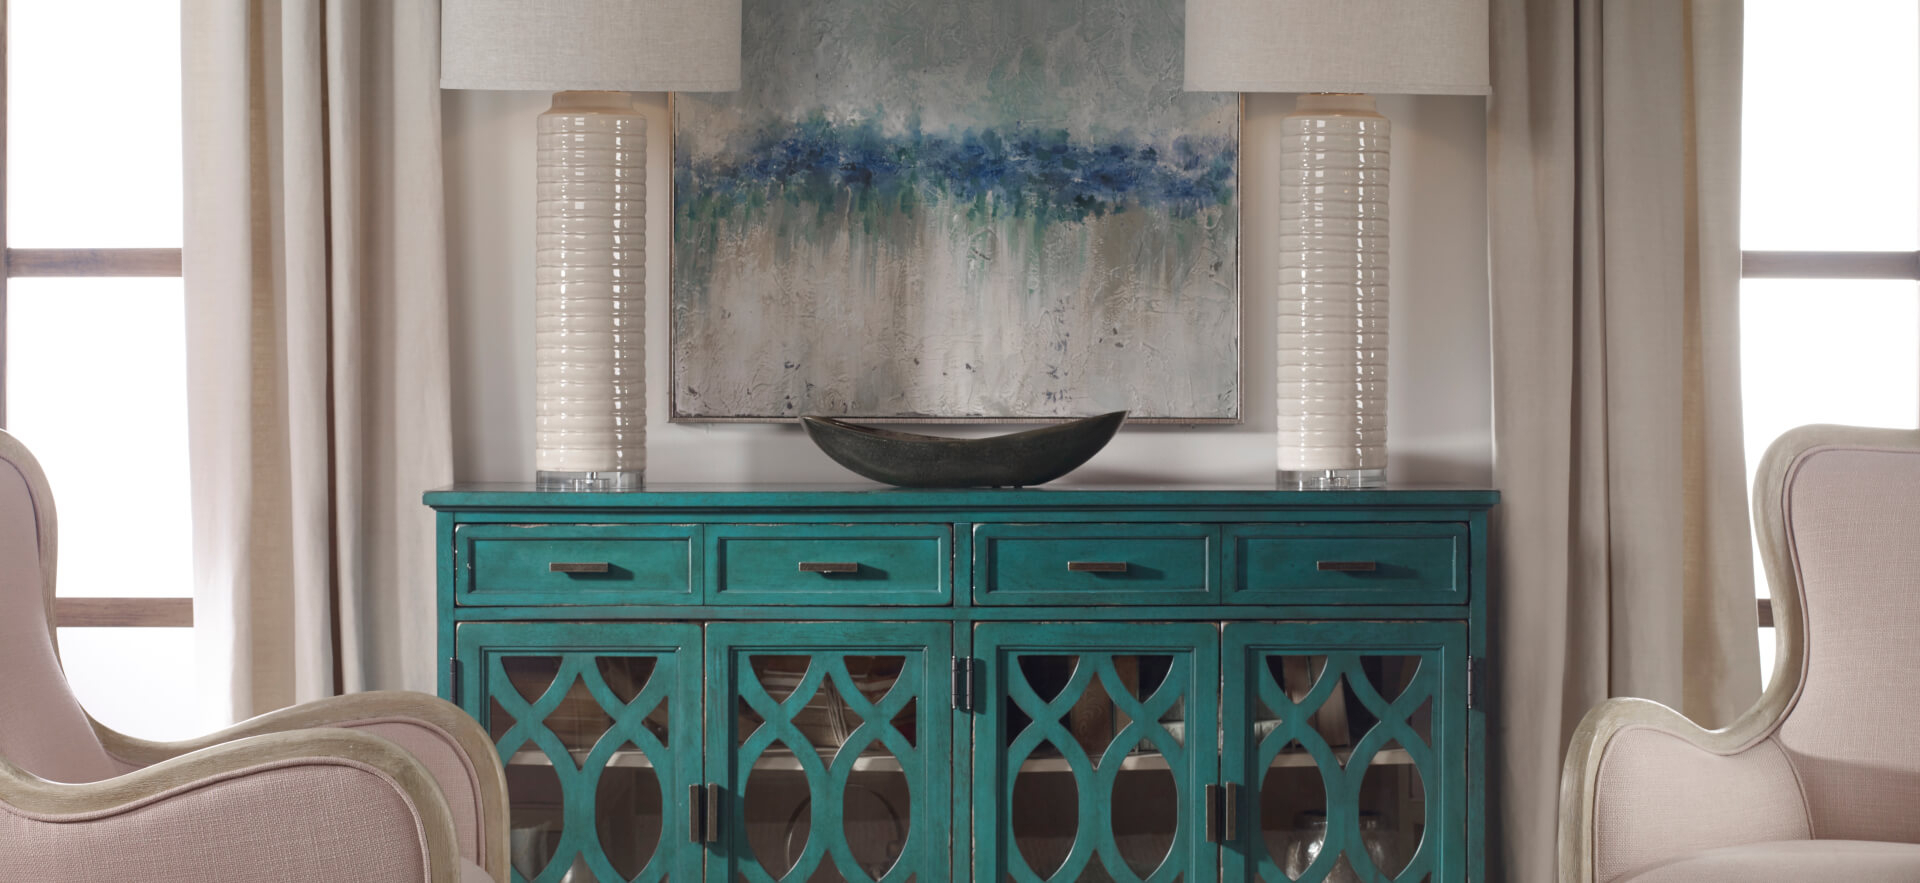 Wholesale Uttermost Accent Furniture, Mirrors, Wall Decor with Contemporary Geometric Wall Decor (Image 30 of 30)